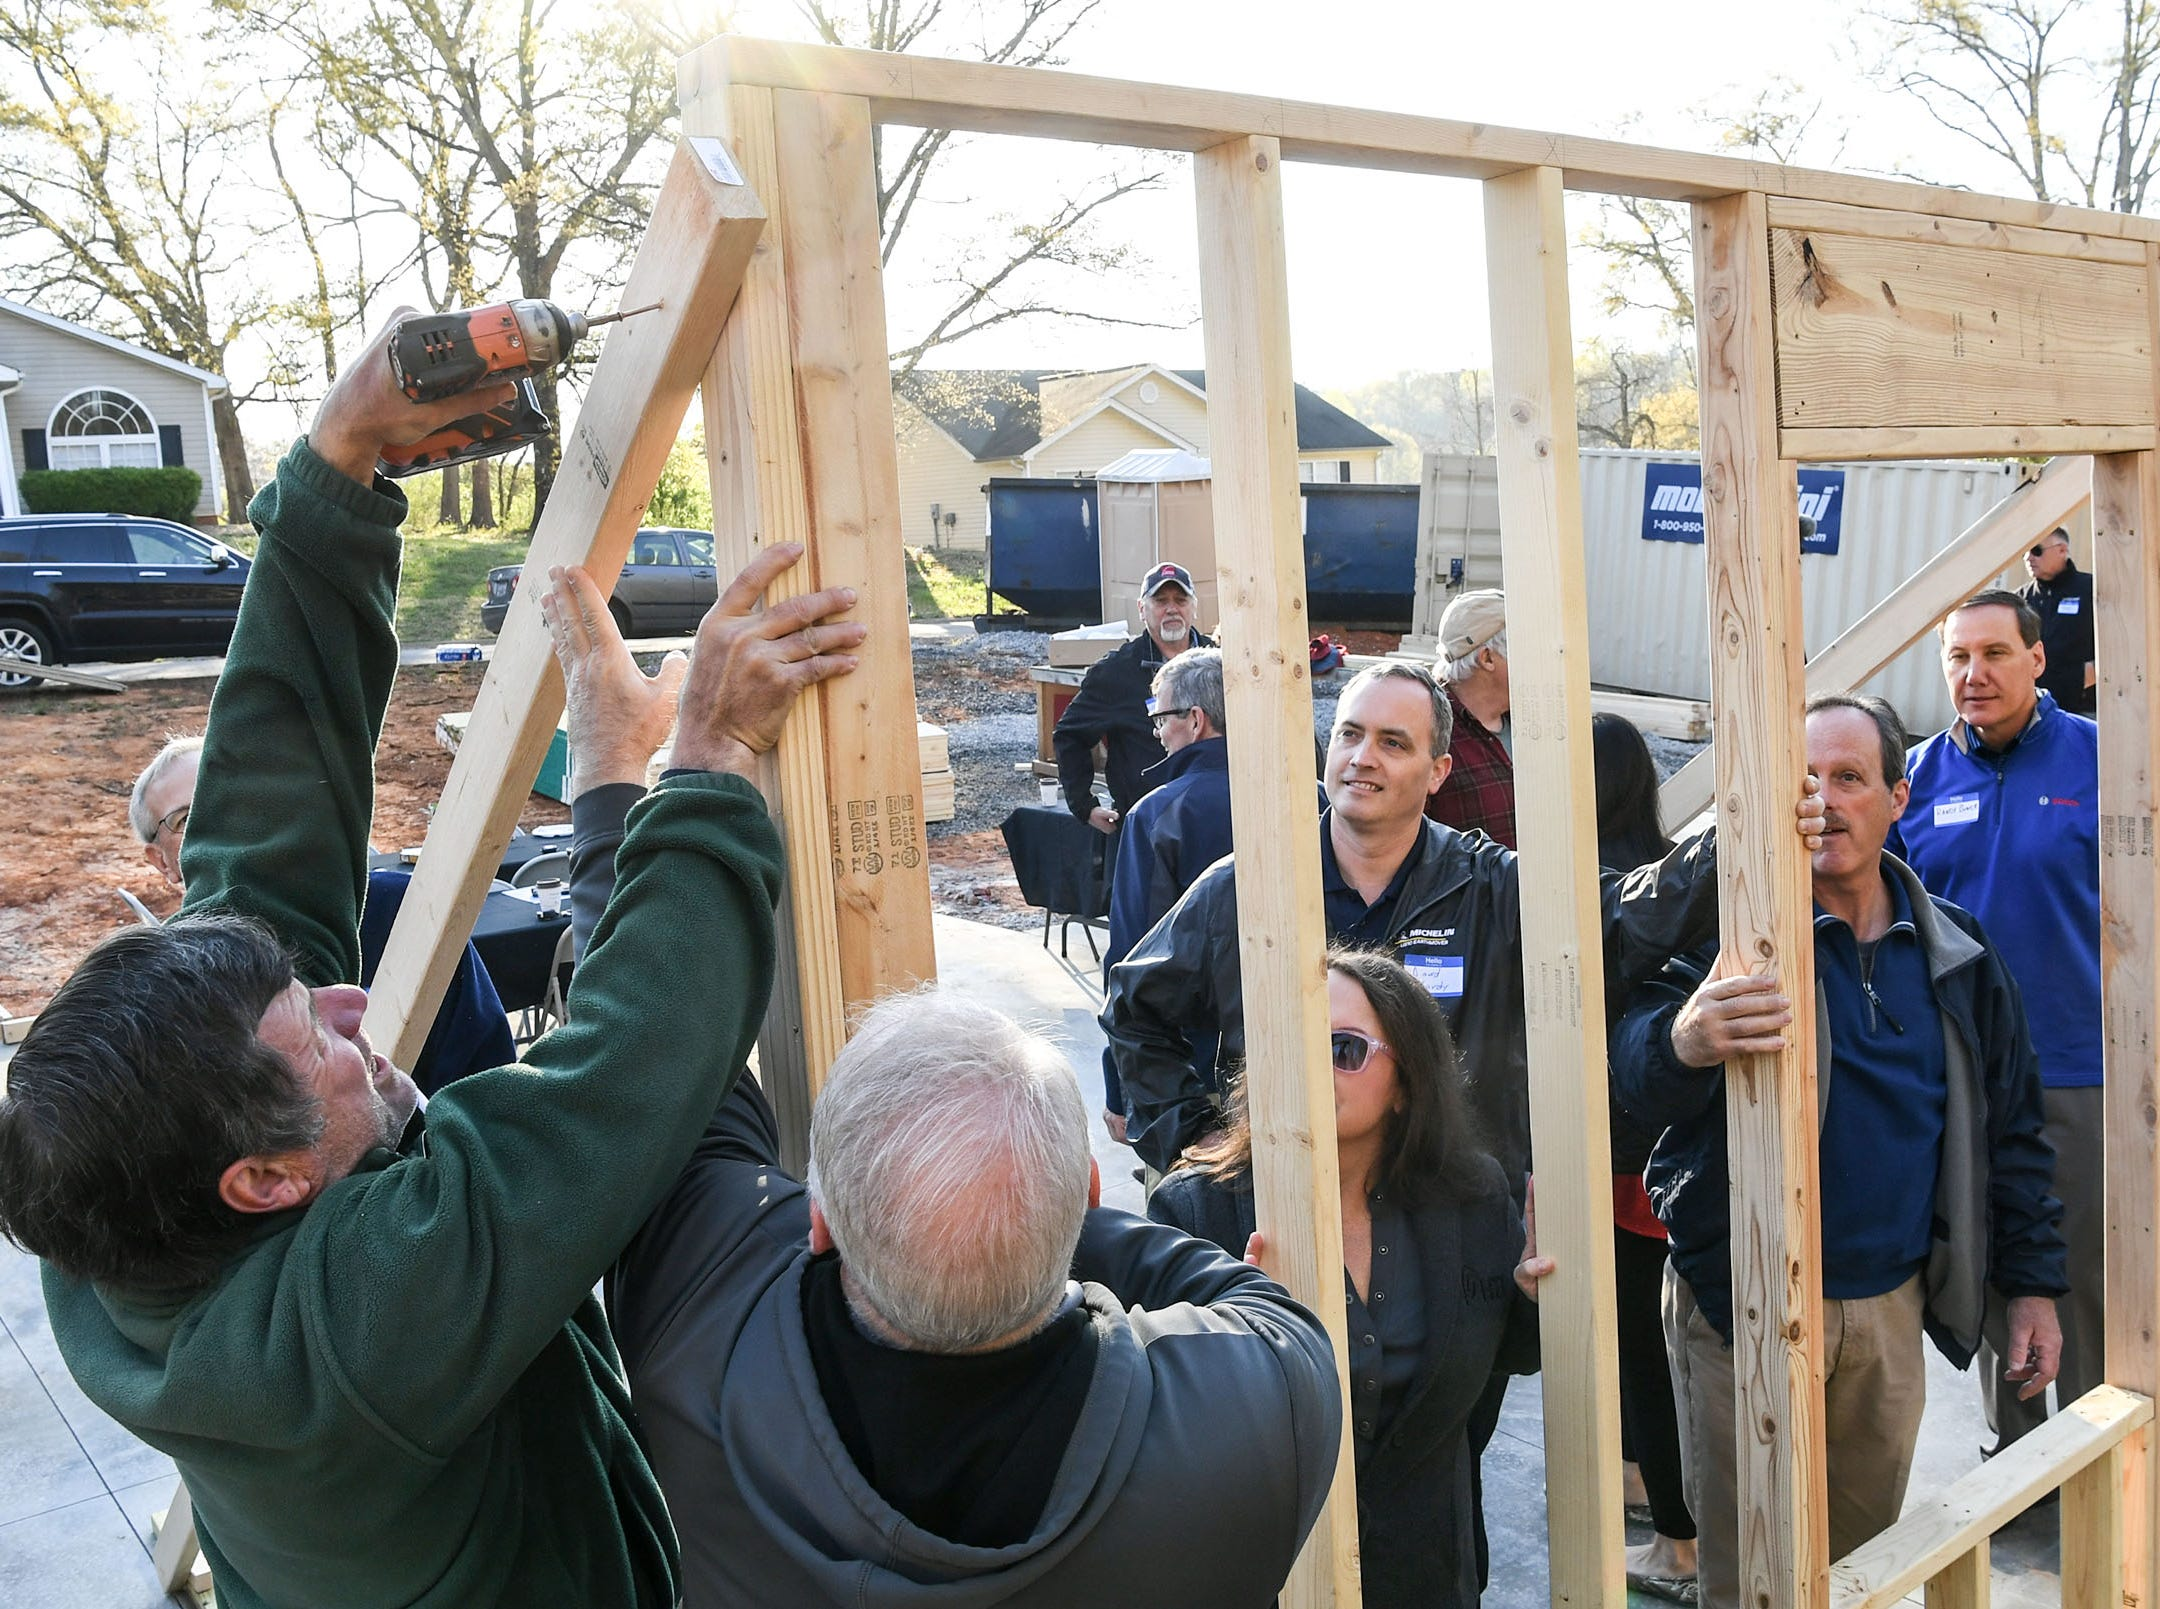 Phil Reamy, a volunteer for Habitat for Humanity of Anderson County, helps raise a wall at a home build for new homeowner recipient Victoria Santos in Anderson Thursday. The home is the eighth on Melrose Place in Anderson since Clemson football players, including Deshaun Watson, helped built the first in the fall of 2015.